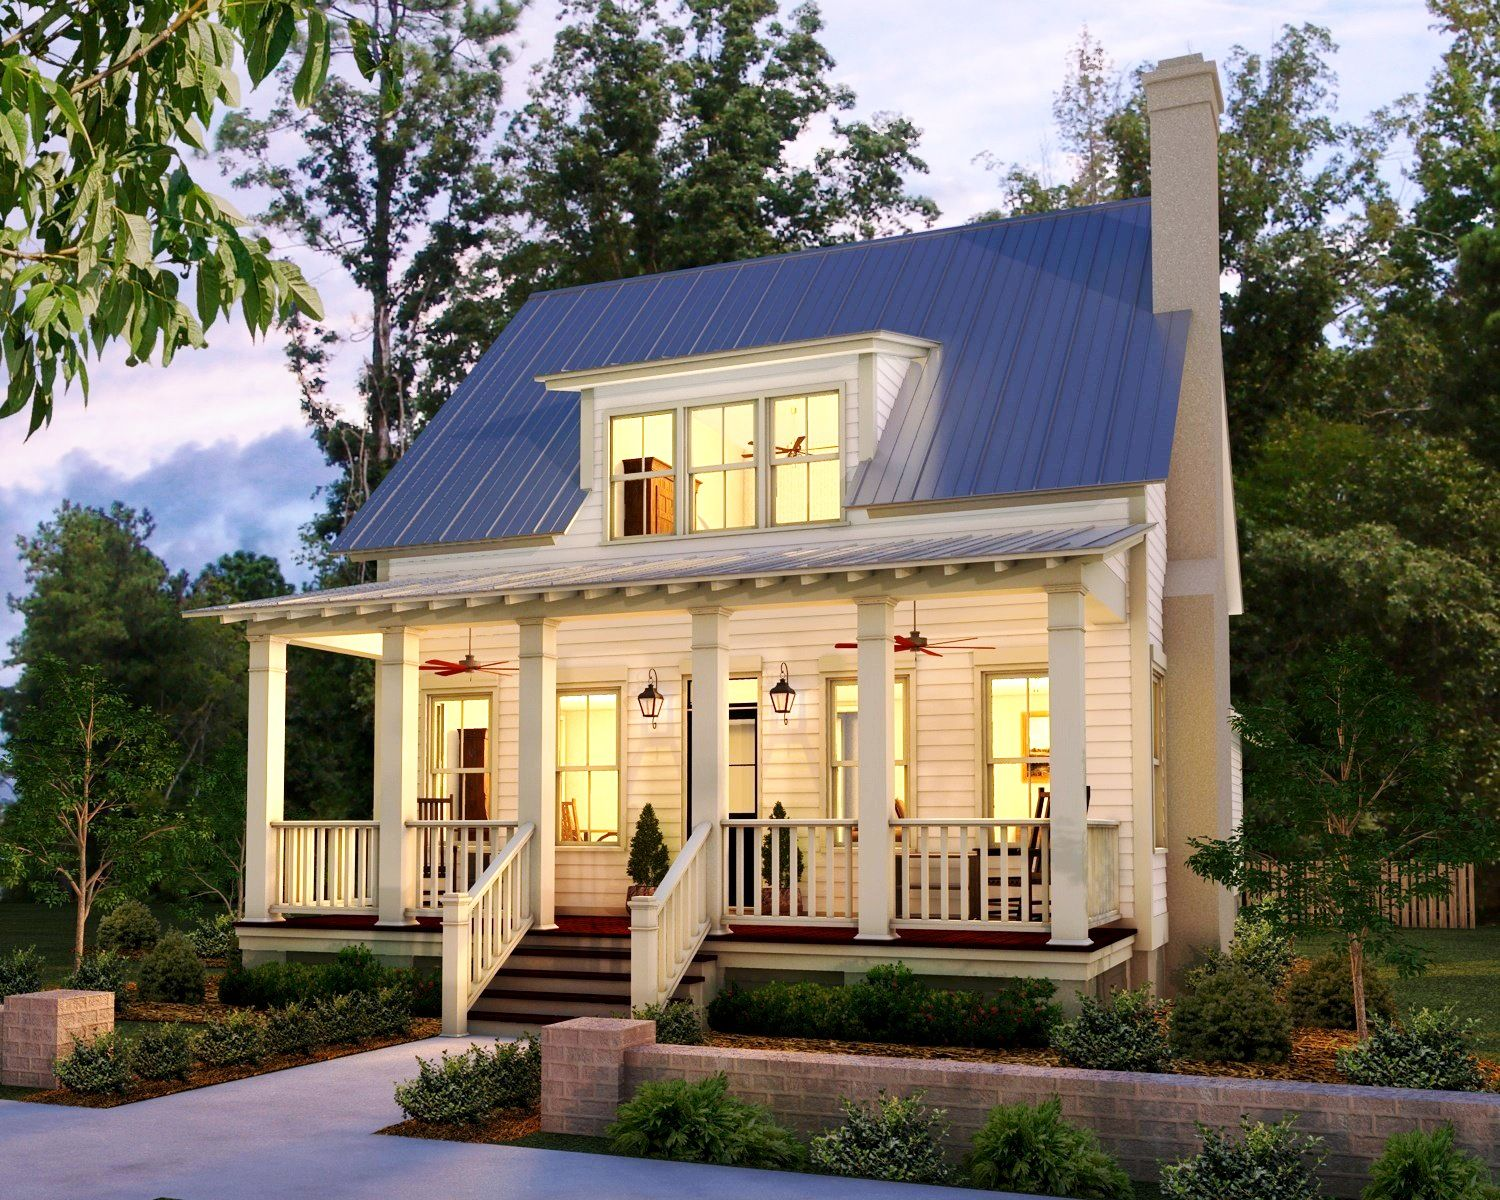 Saluda river club collection of homes columbia sc for Small cozy home plans